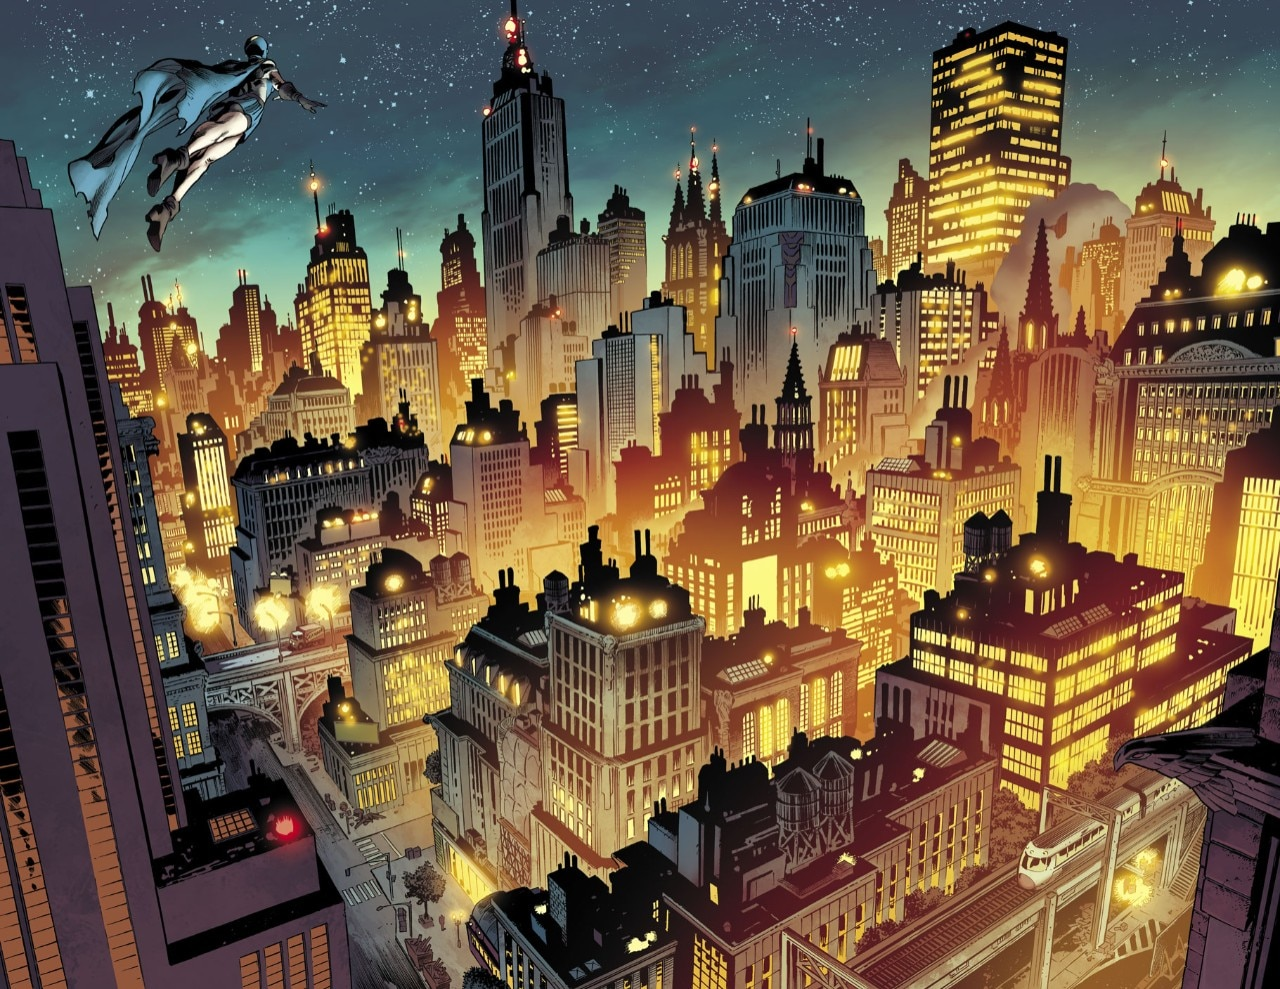 Metropolis and Gotham, day and night of the American city